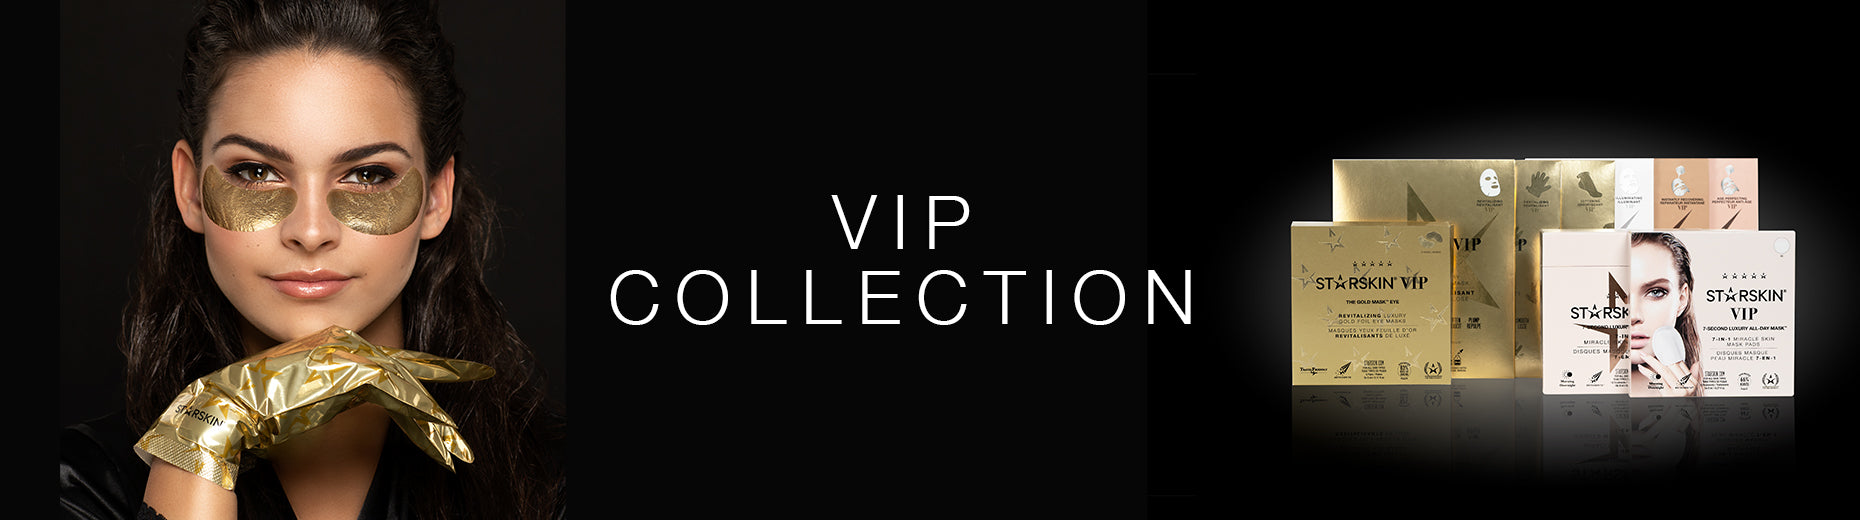 banner vip collection showing vip assortment and model wearing vip gold hand mask and eye patches